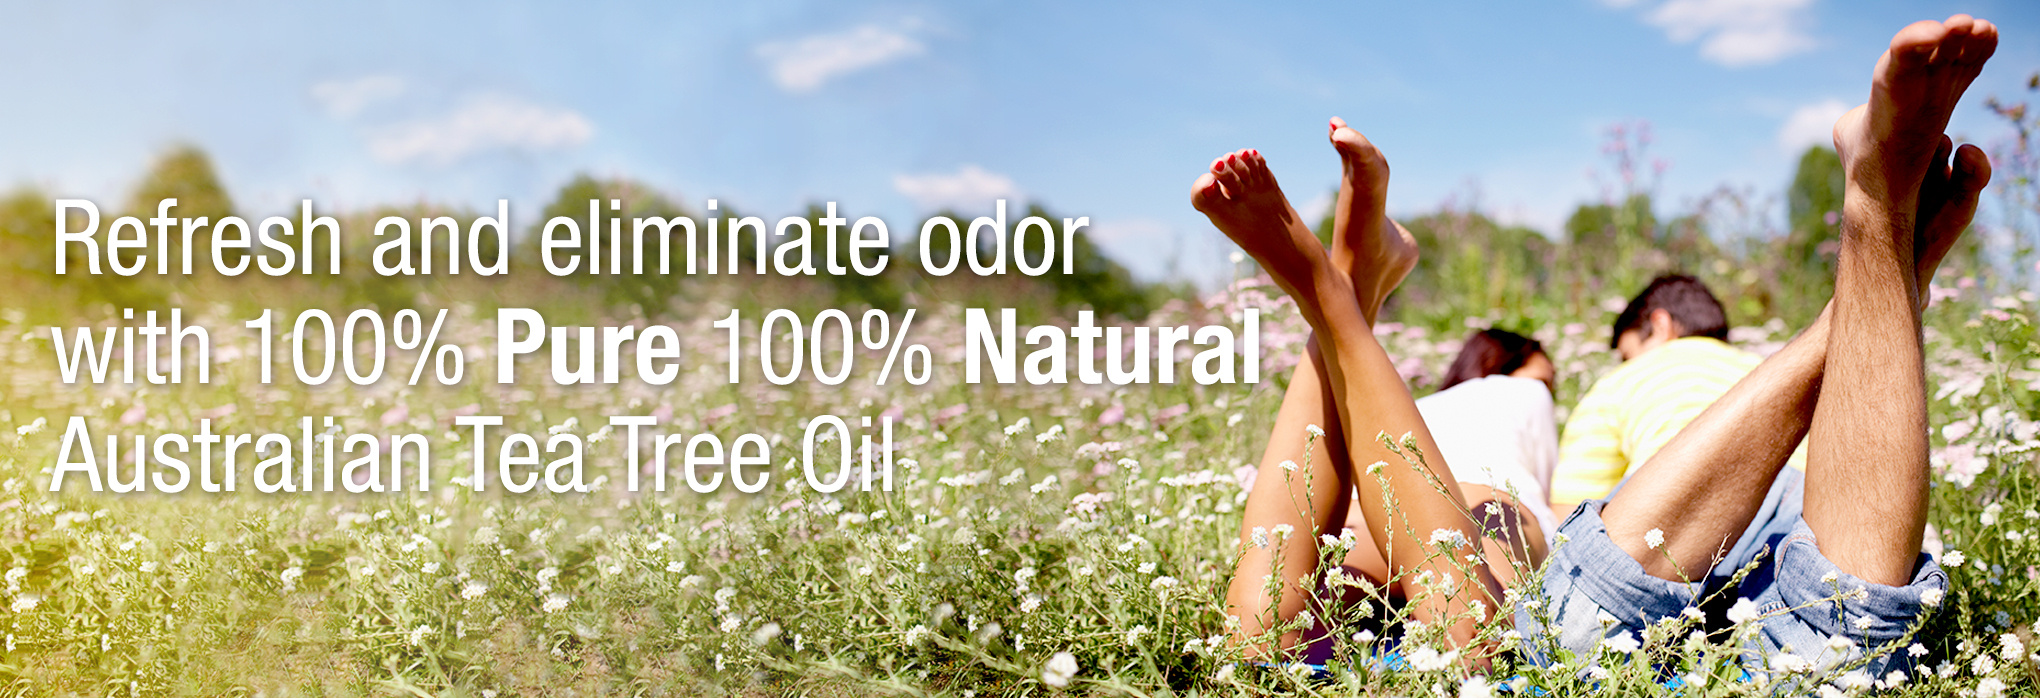 Refresh and eliminate odor with 100% pure 100% natural Australian Tea Tree Oil